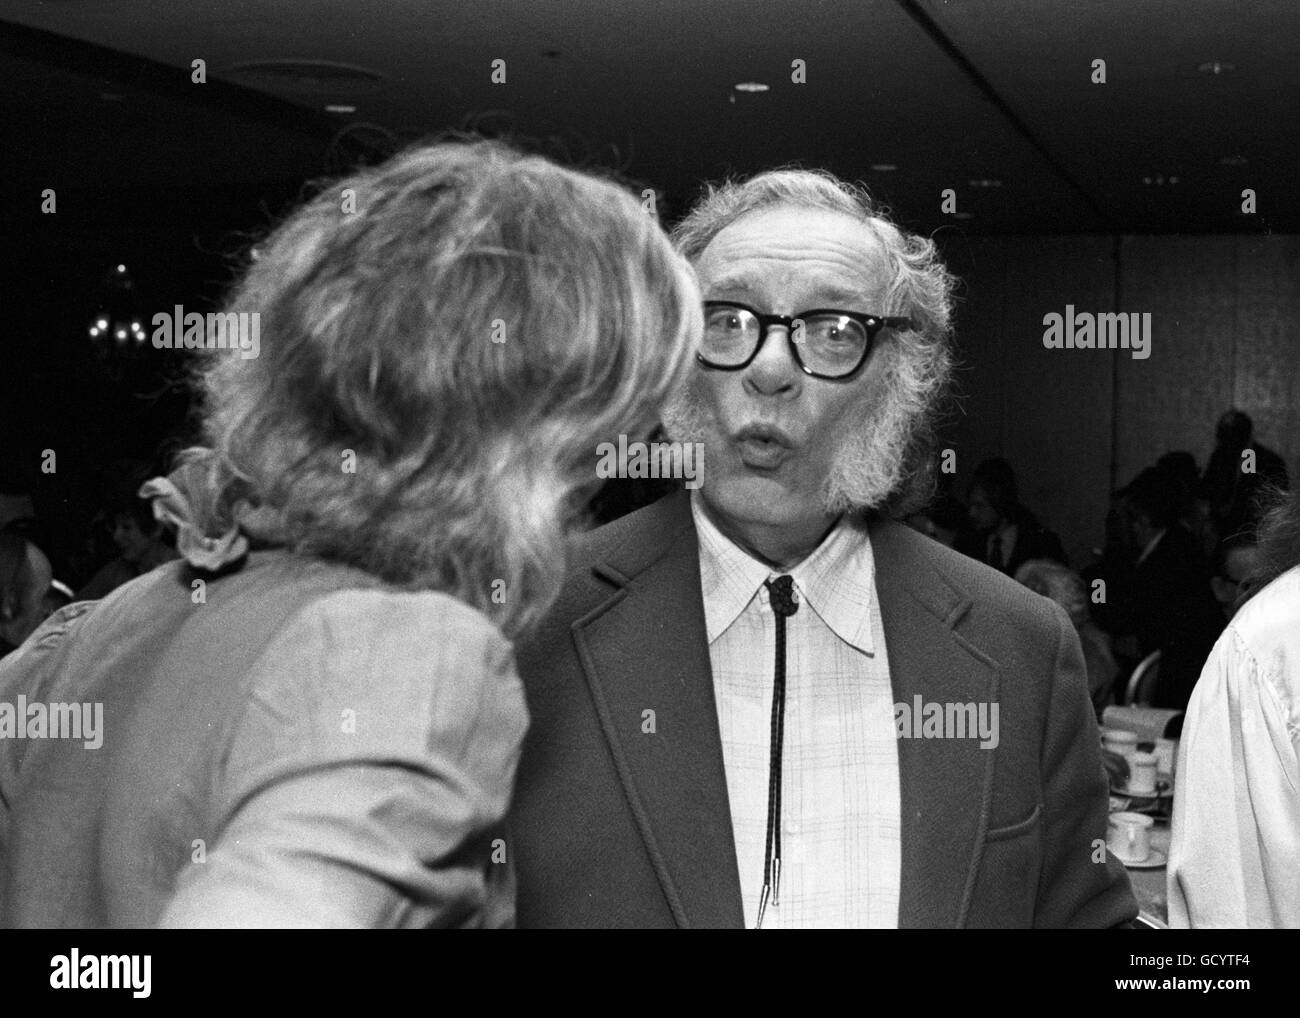 Isaac Asimov, at an event hosted by the Mystery Writers of America - Stock Image